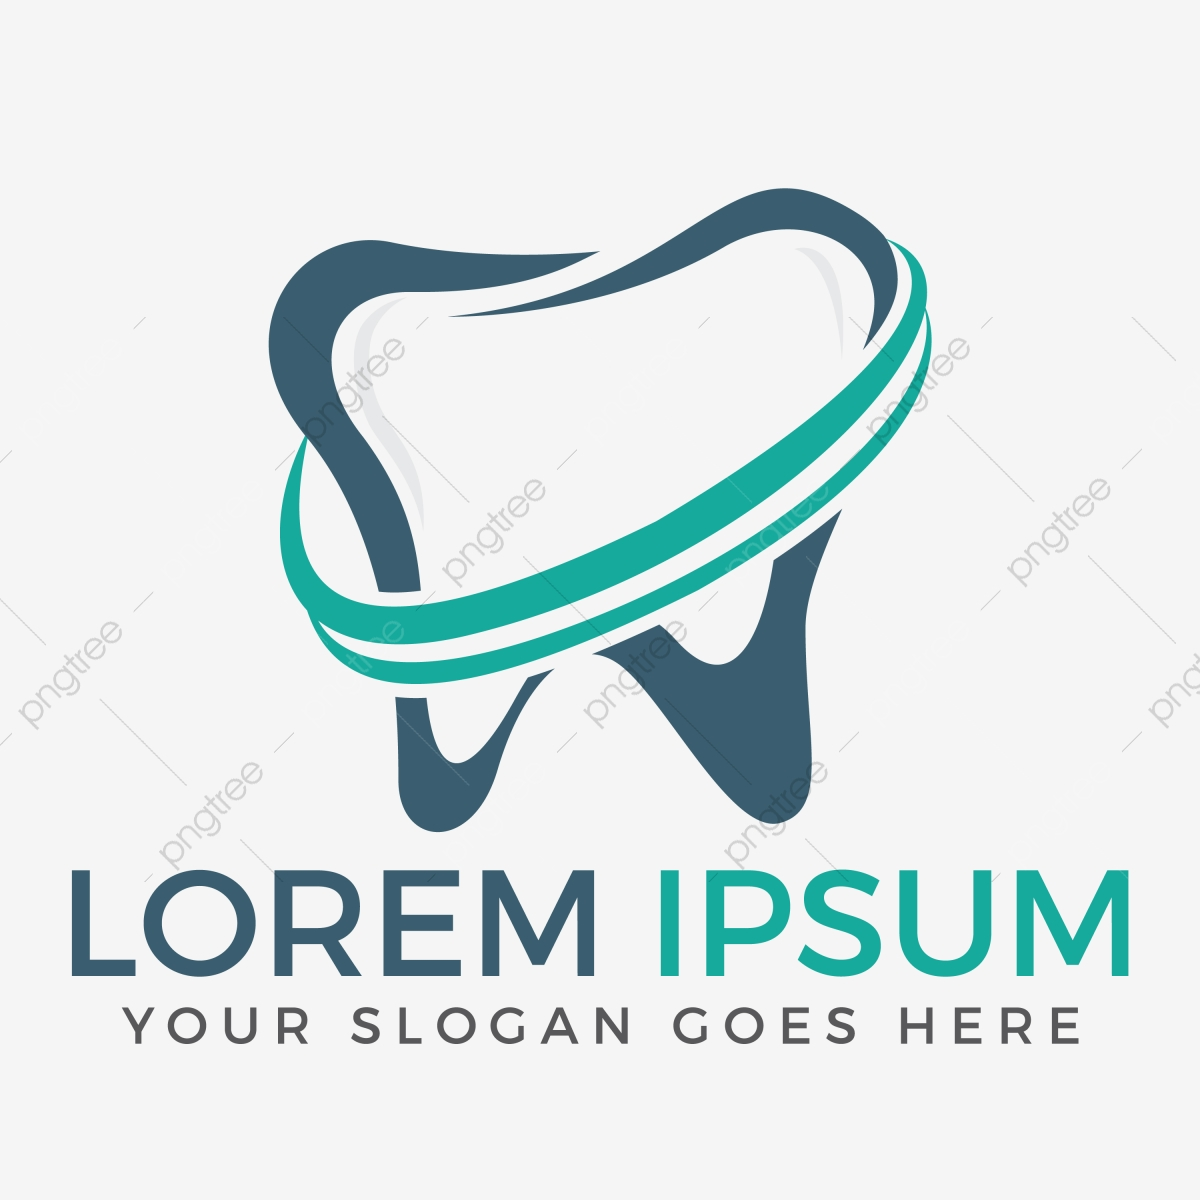 Tooth Vector Logo Template For Dentistry Or Dental Clinic And Health.